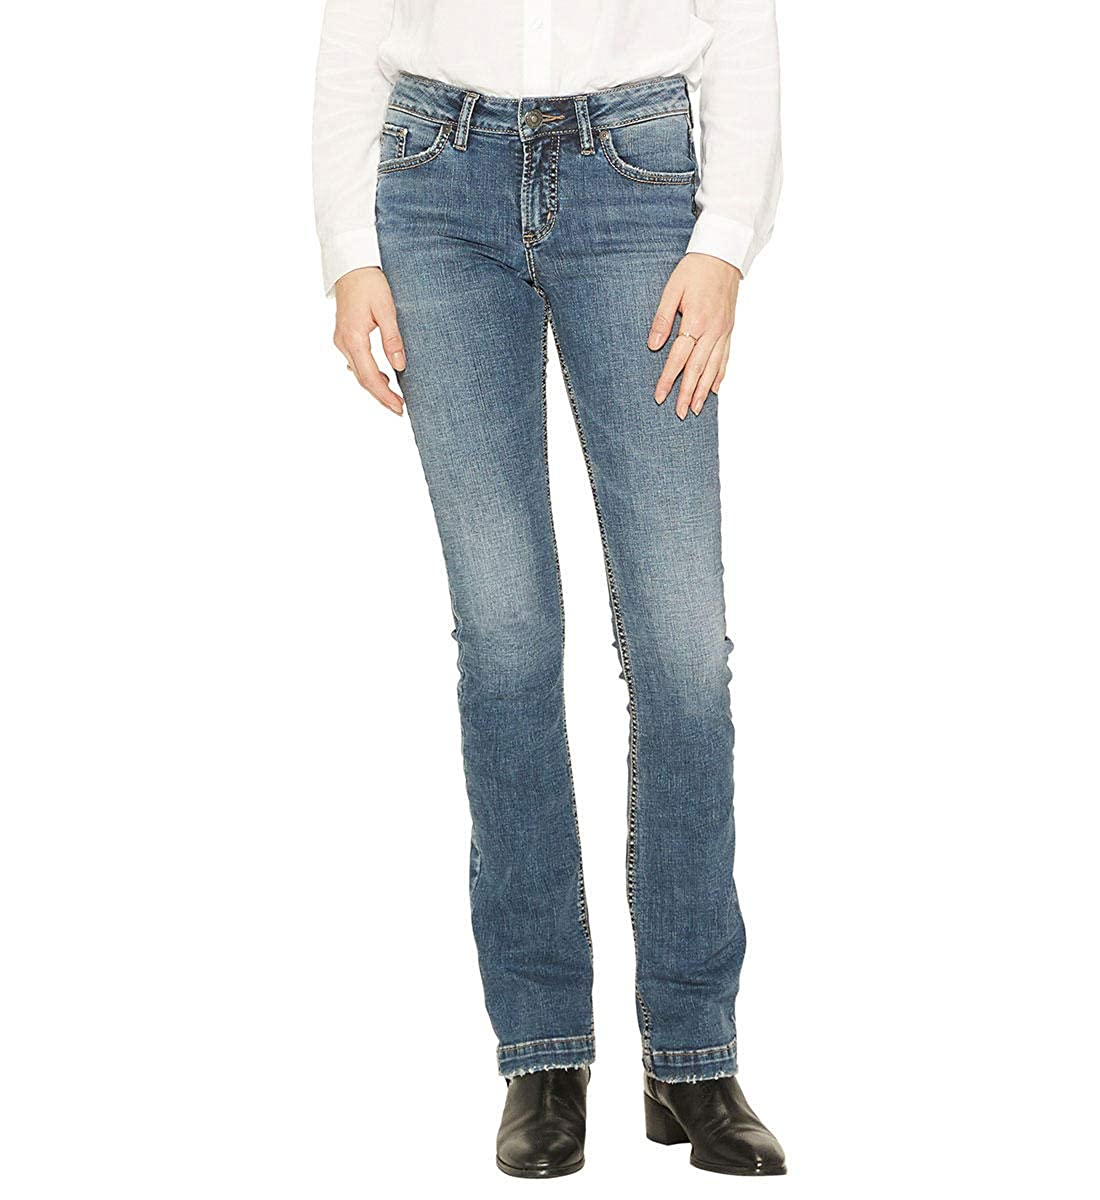 7caf3dcd Machine Wash Mid-rise slim boot cut jeans with a dark indigo wash. Eased  curvy fit with a relaxed hip and thigh. Super stretch denim ...